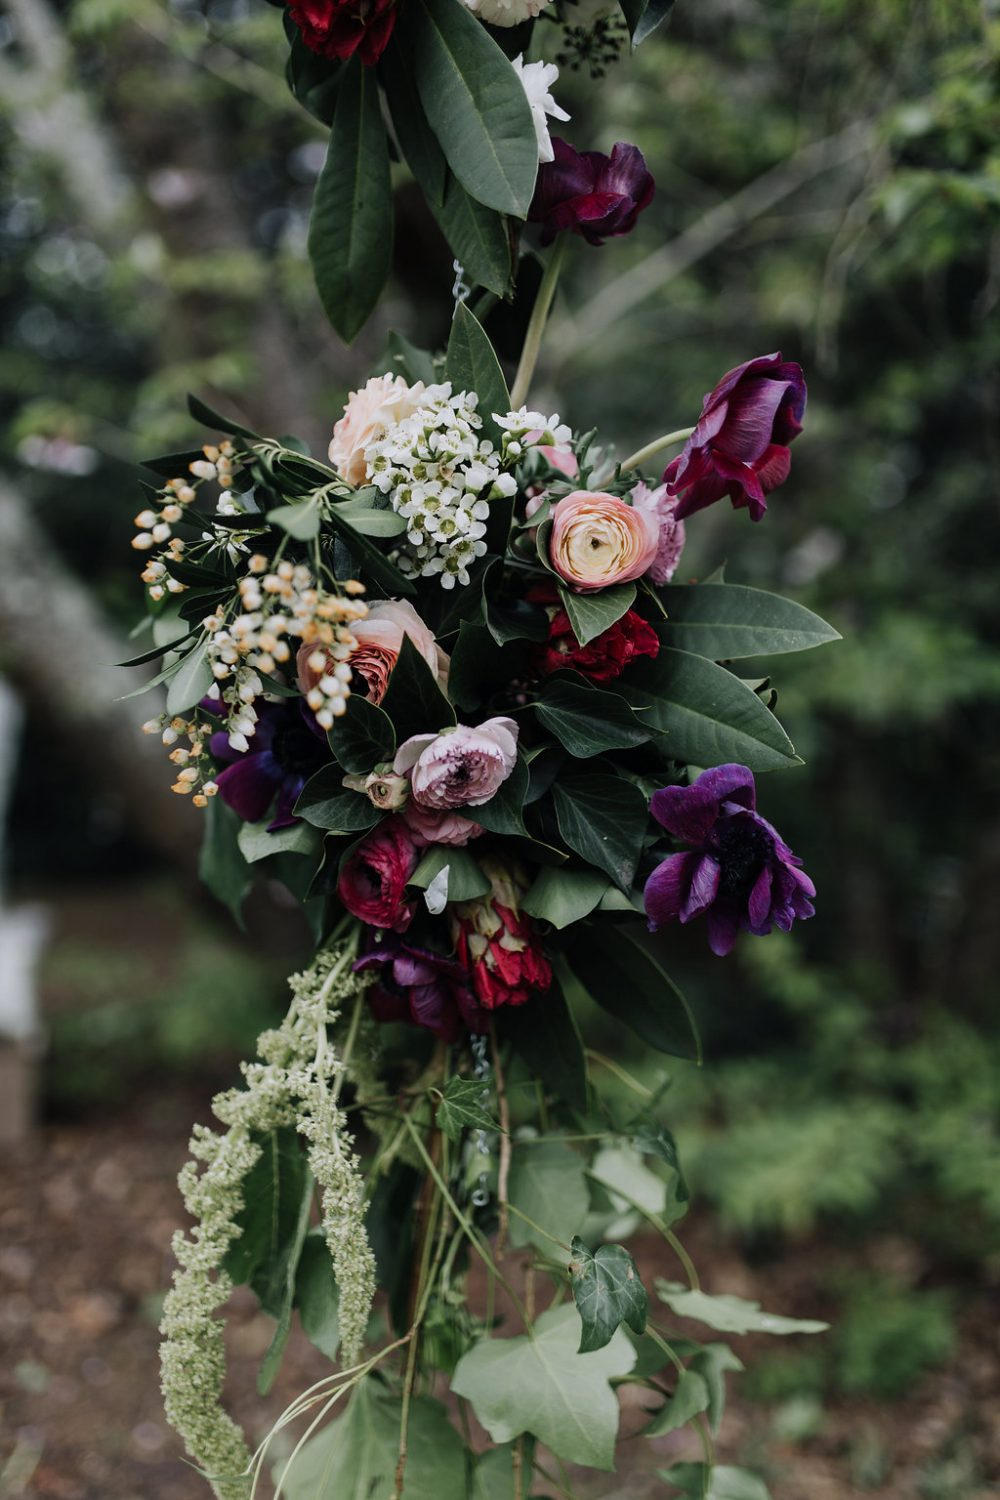 flower details at countryside ceremony